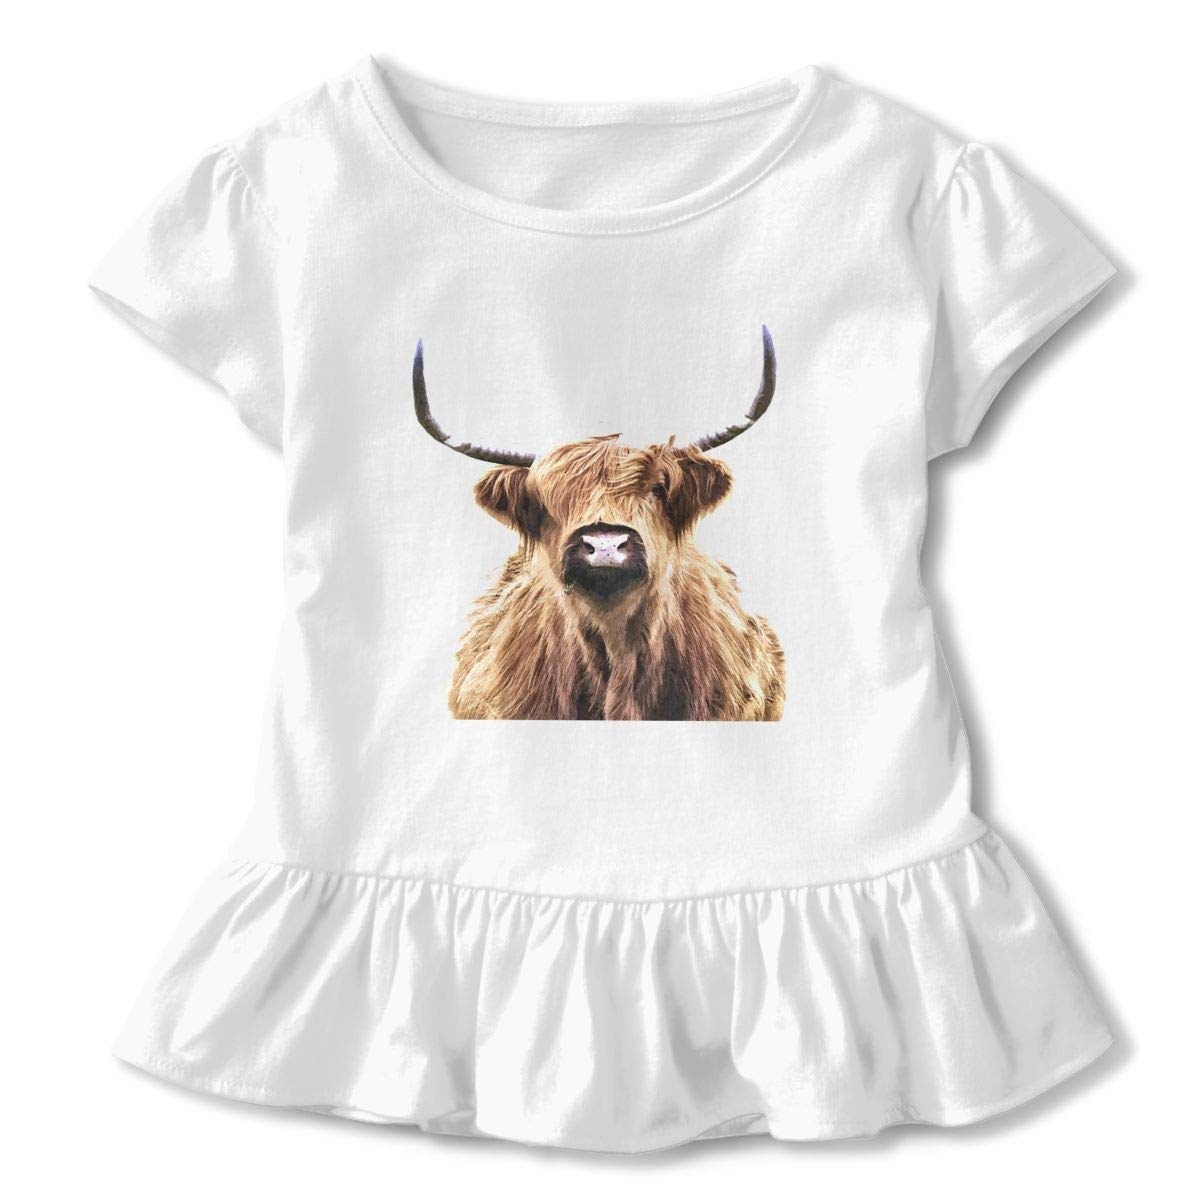 QUZtww Highland-cow-portrait905836-curtains Cute Adorable Printed Patterns Basic Ruffle Tee Shirts with Short Sleeves and O-Neck for Daily Party School Outside Playing White